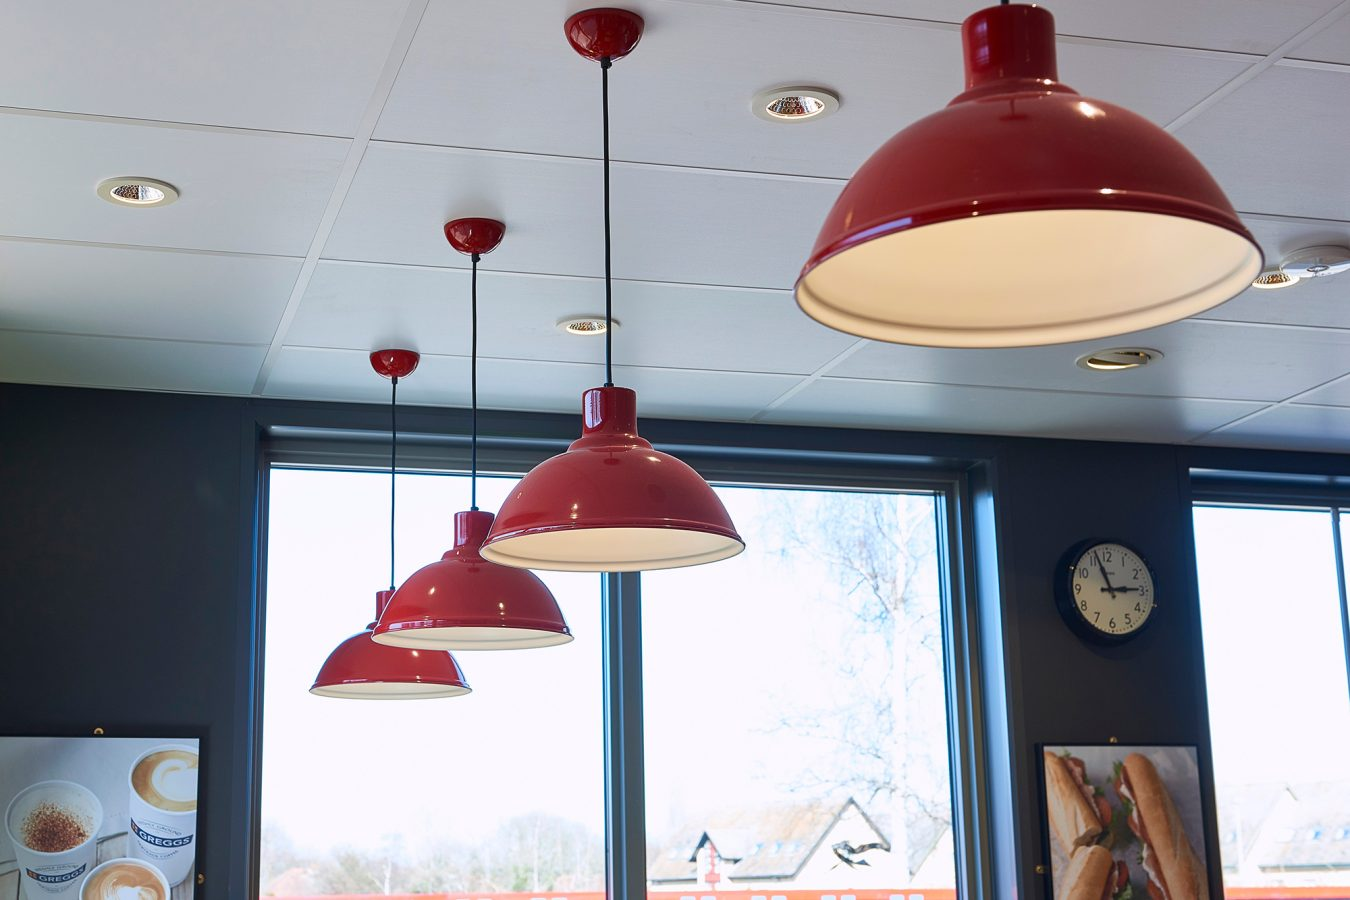 Greggs pop-up unit refurbished in Bracknell, with a modern interior lightining design, in red.